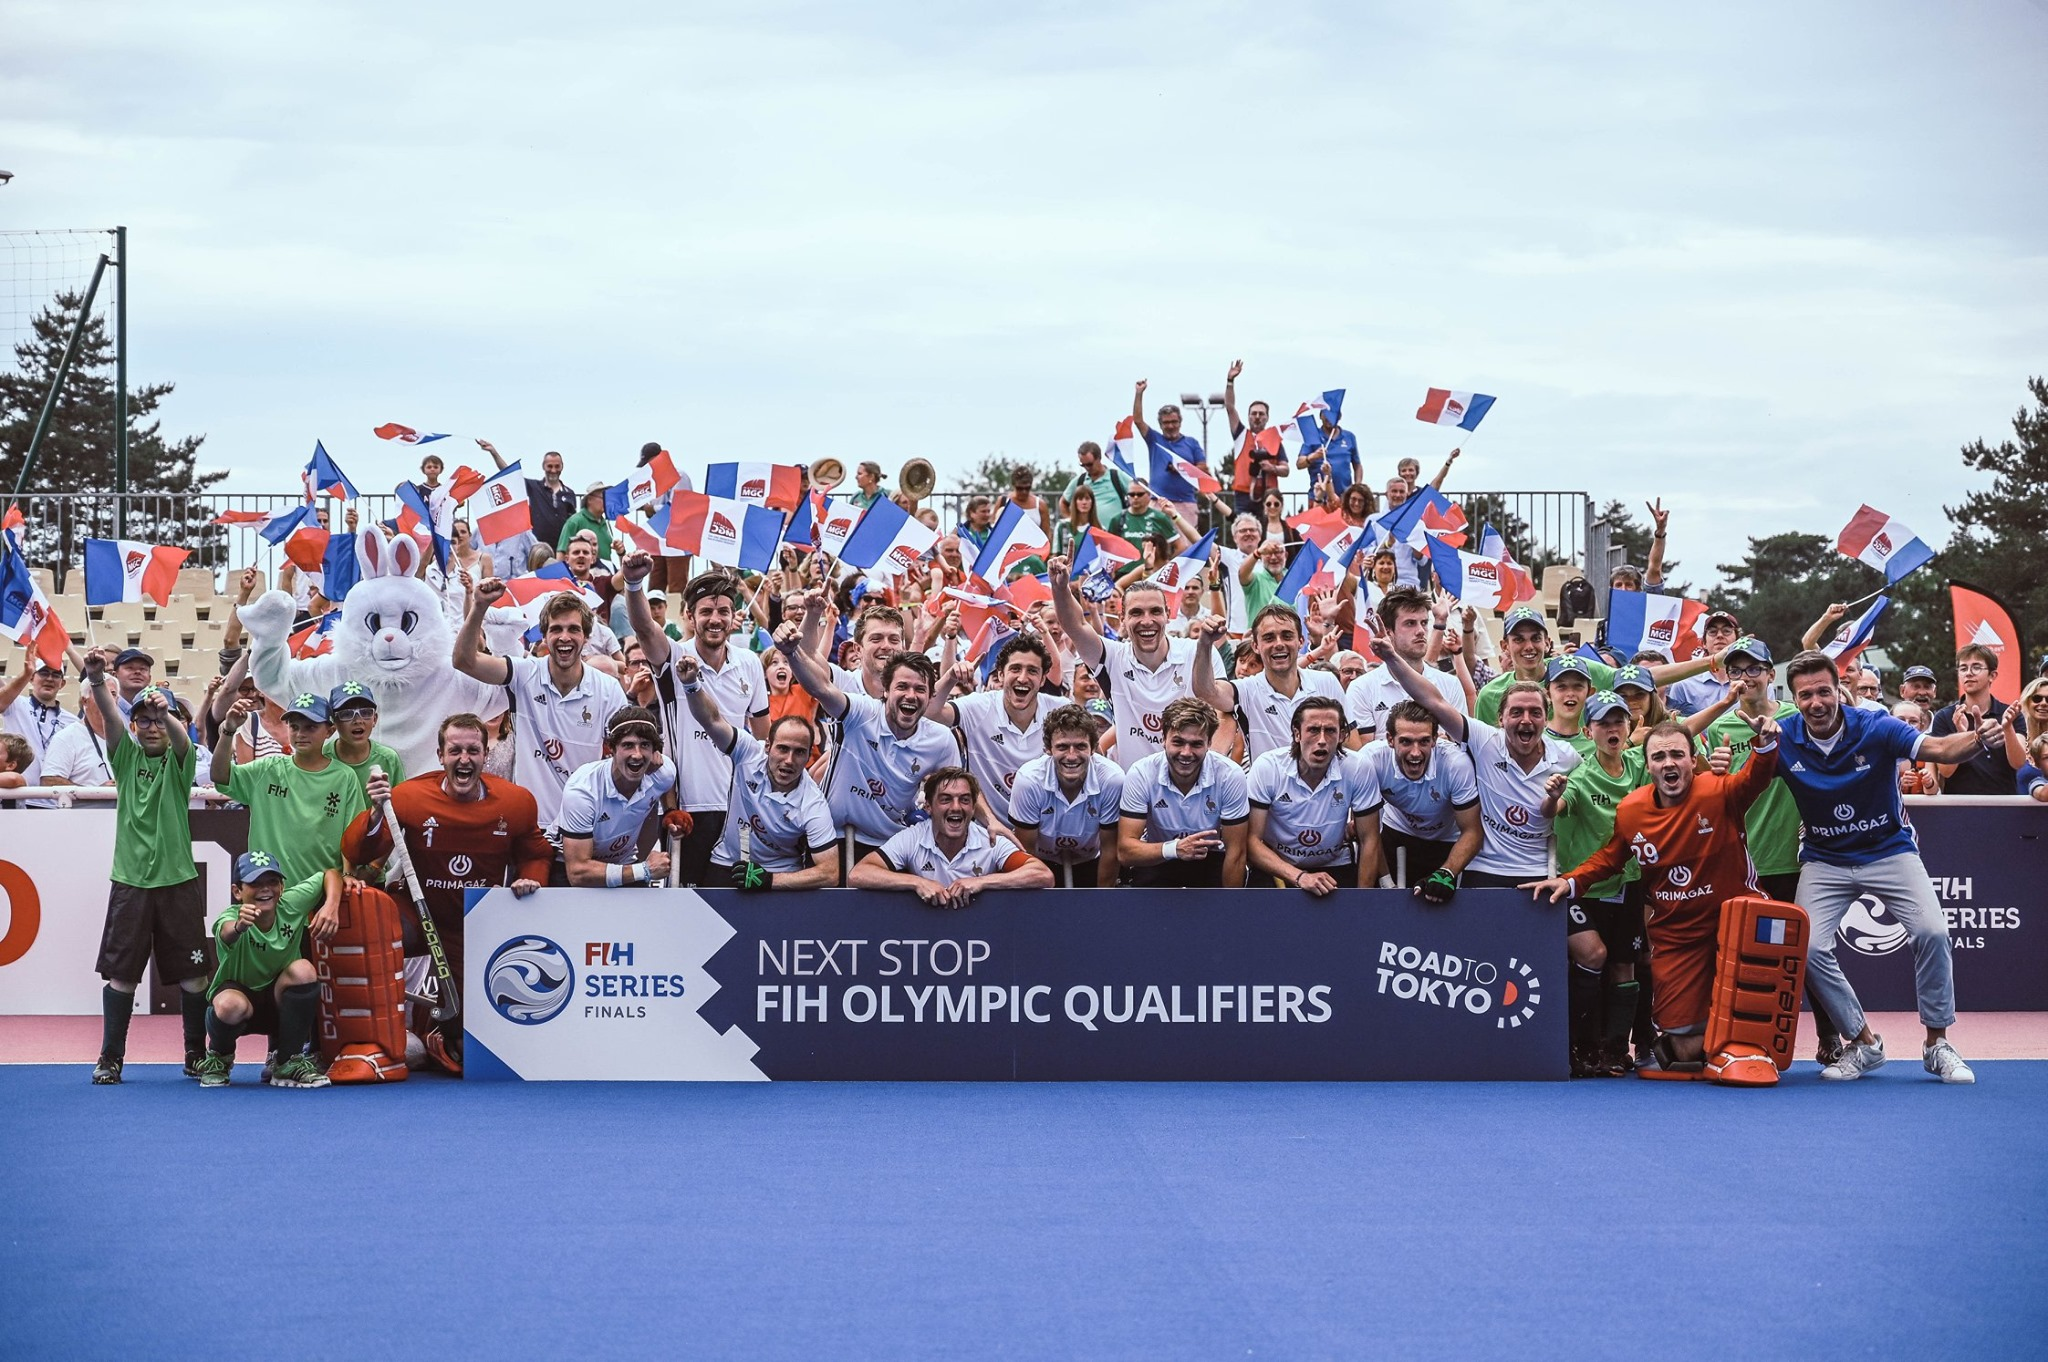 FIH_SERIES_FINALS_2019.jpg